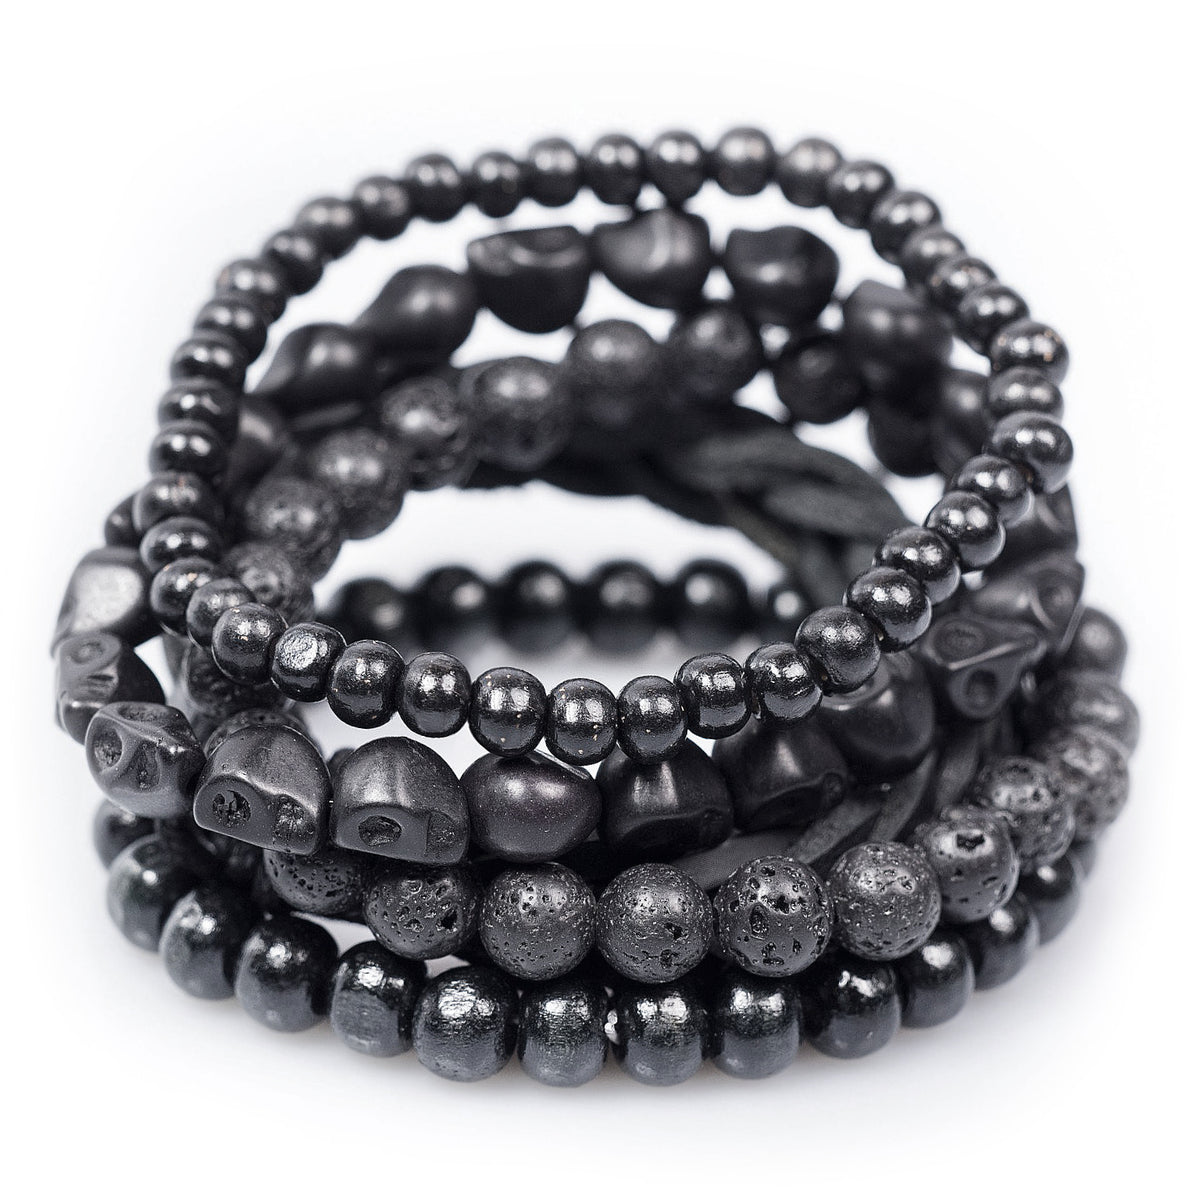 Black Bracelet Set with Bamboo Wood, Lava Stone Beads, Leather and Stone Skull Details